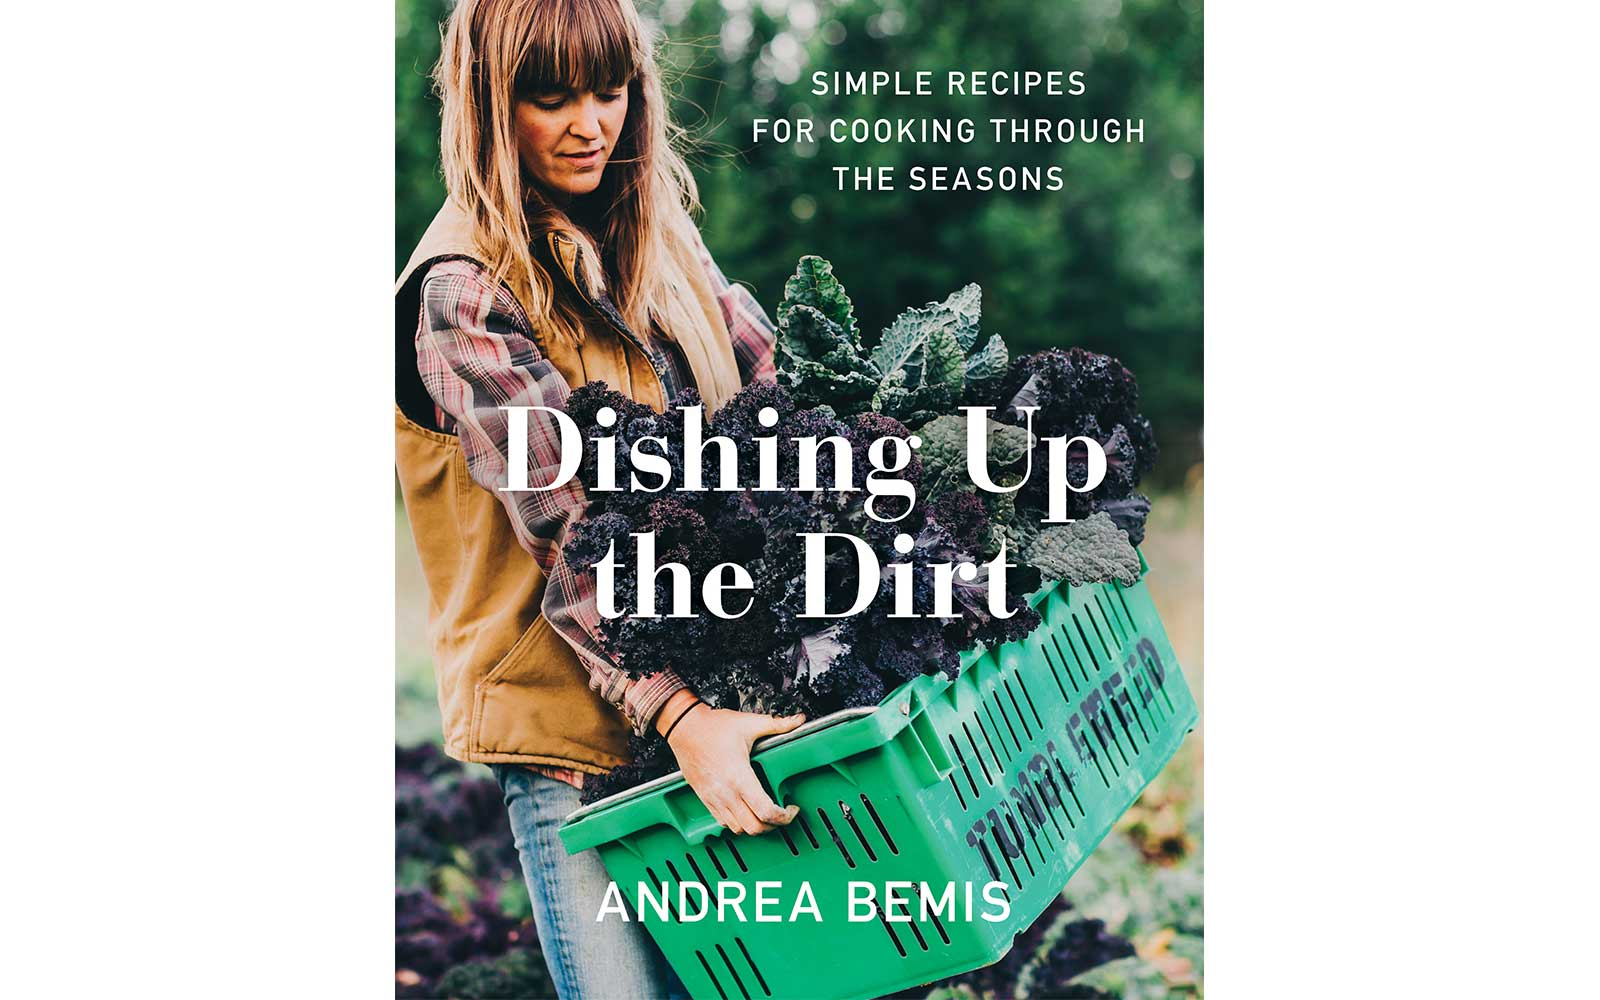 'Dishing Up the Dirt: Simple Recipes for Cooking Through the Seasons'